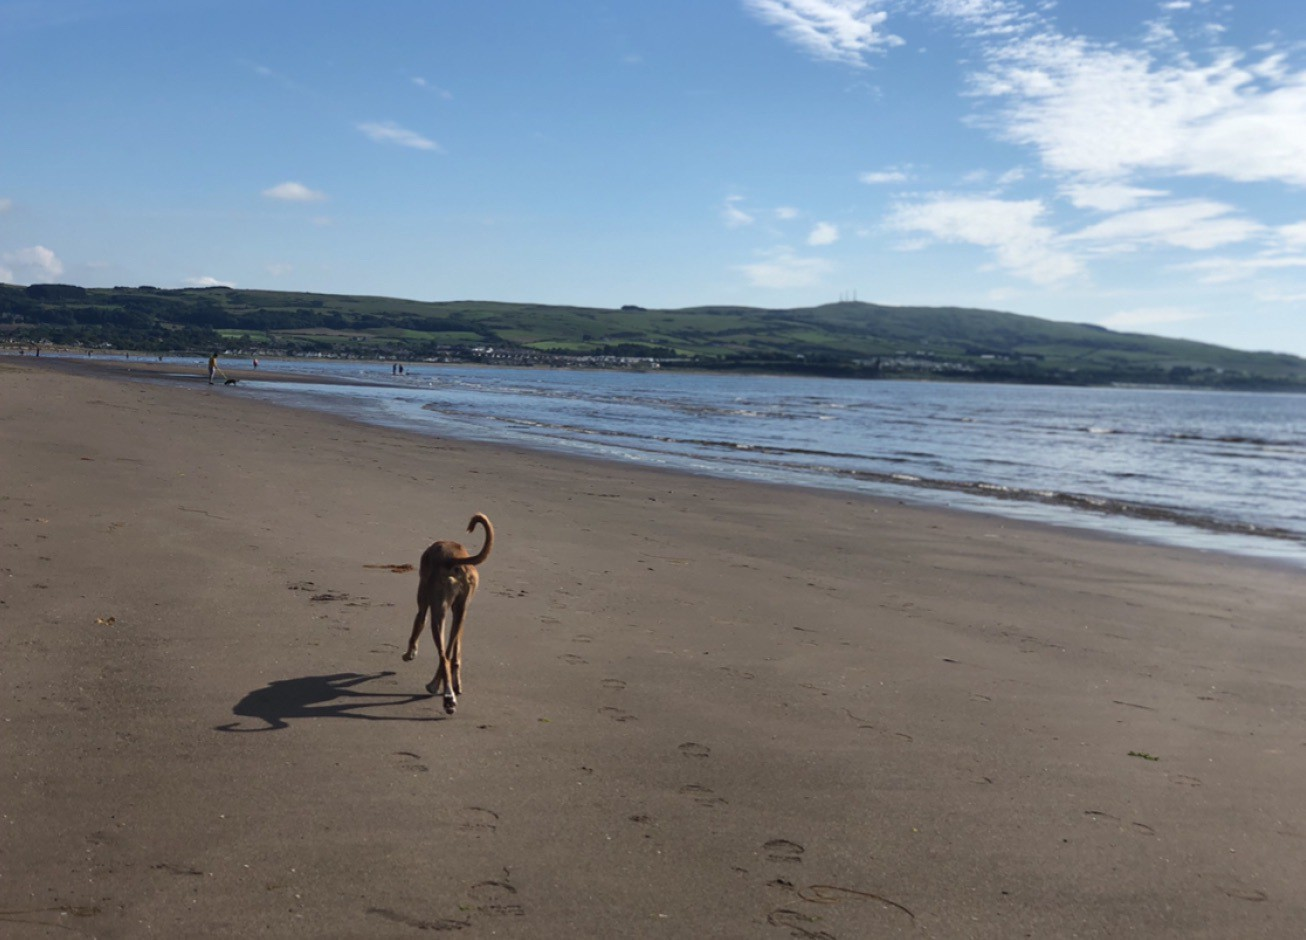 Ginger dog trotting happily along the beach, towards Greenan Castle